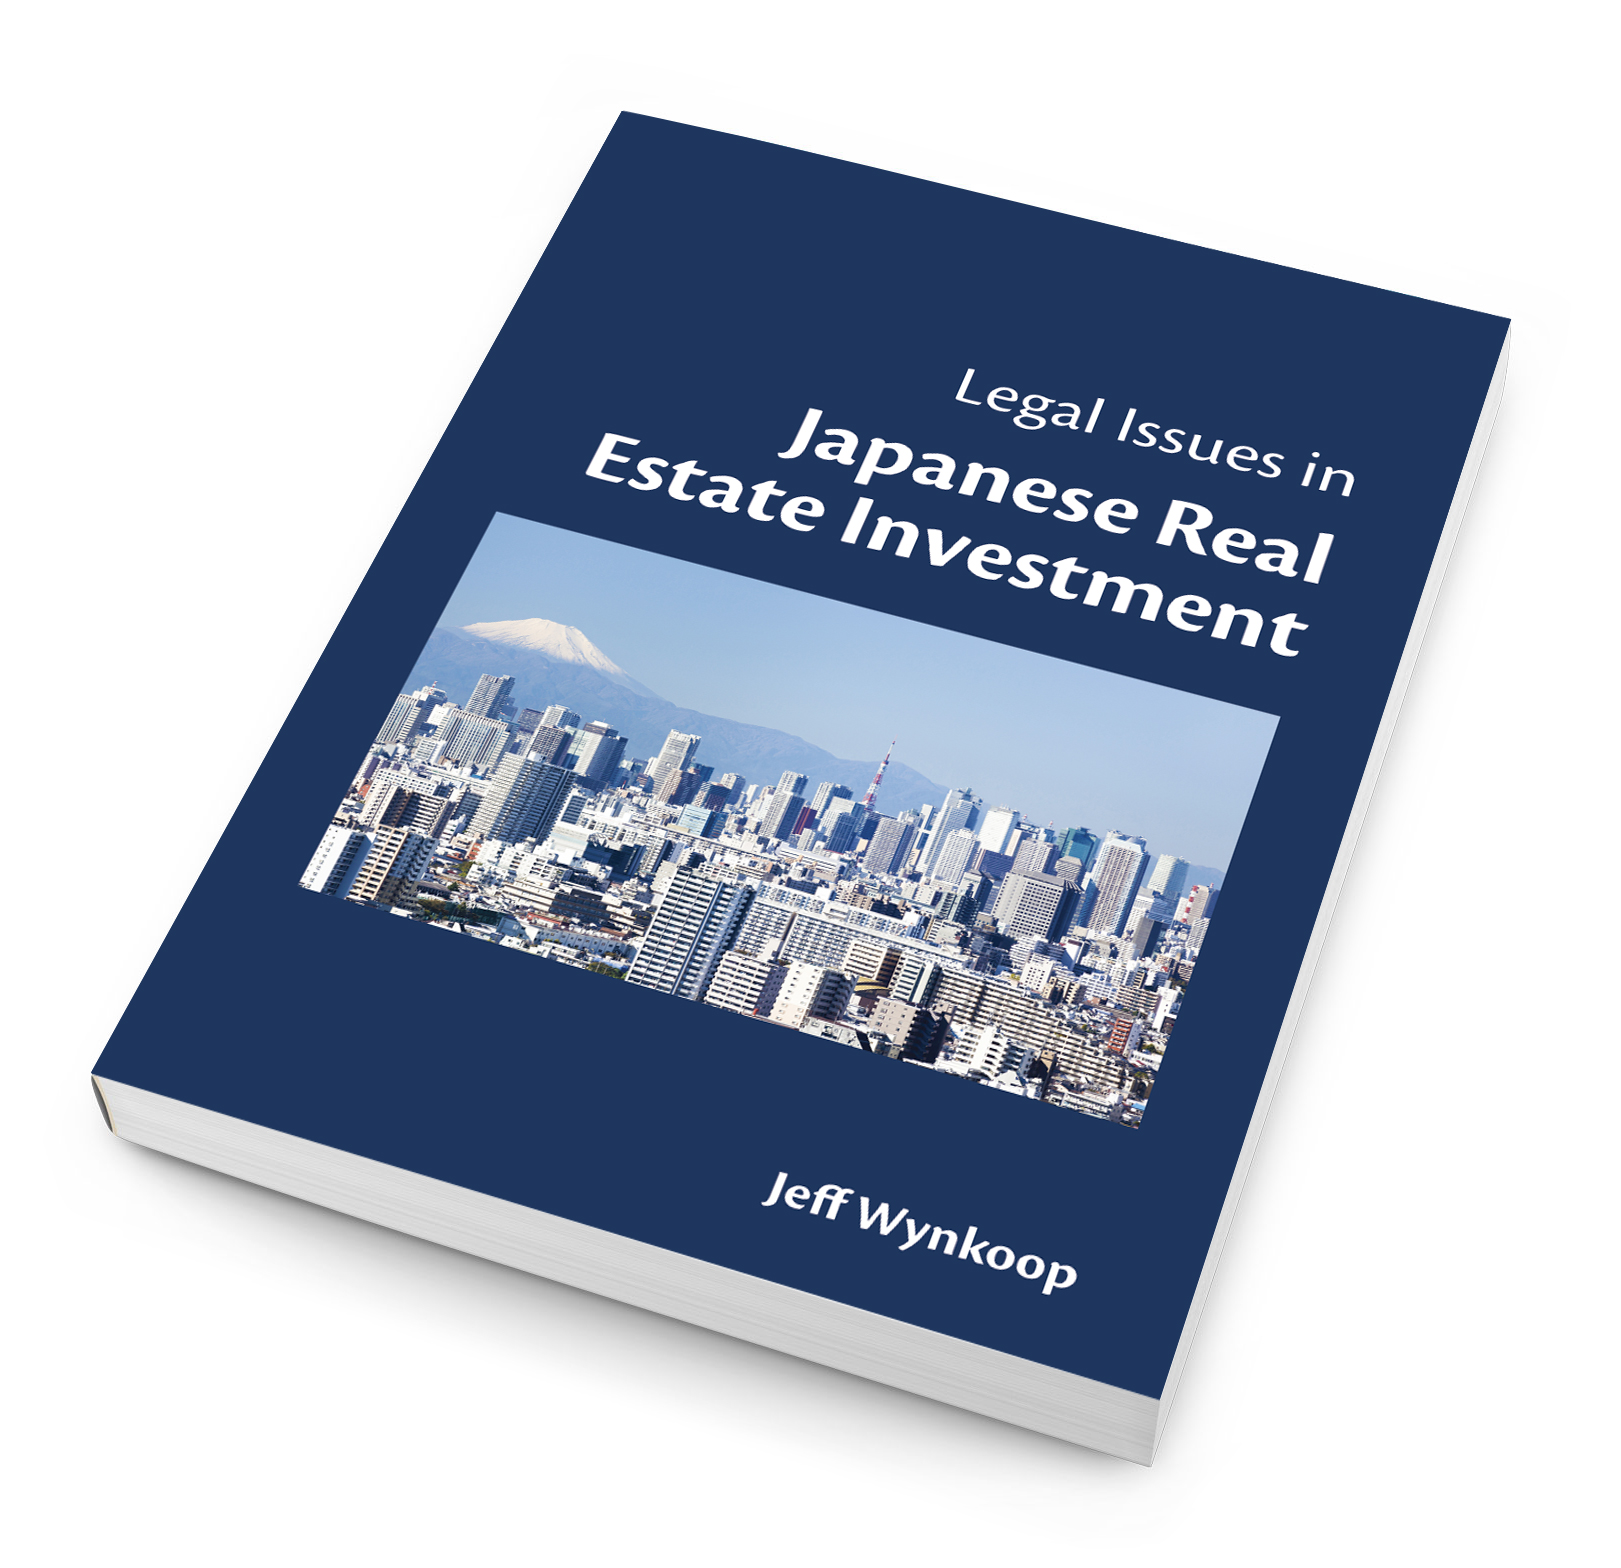 Legal Issues in Japanese Real Estate Investment Book